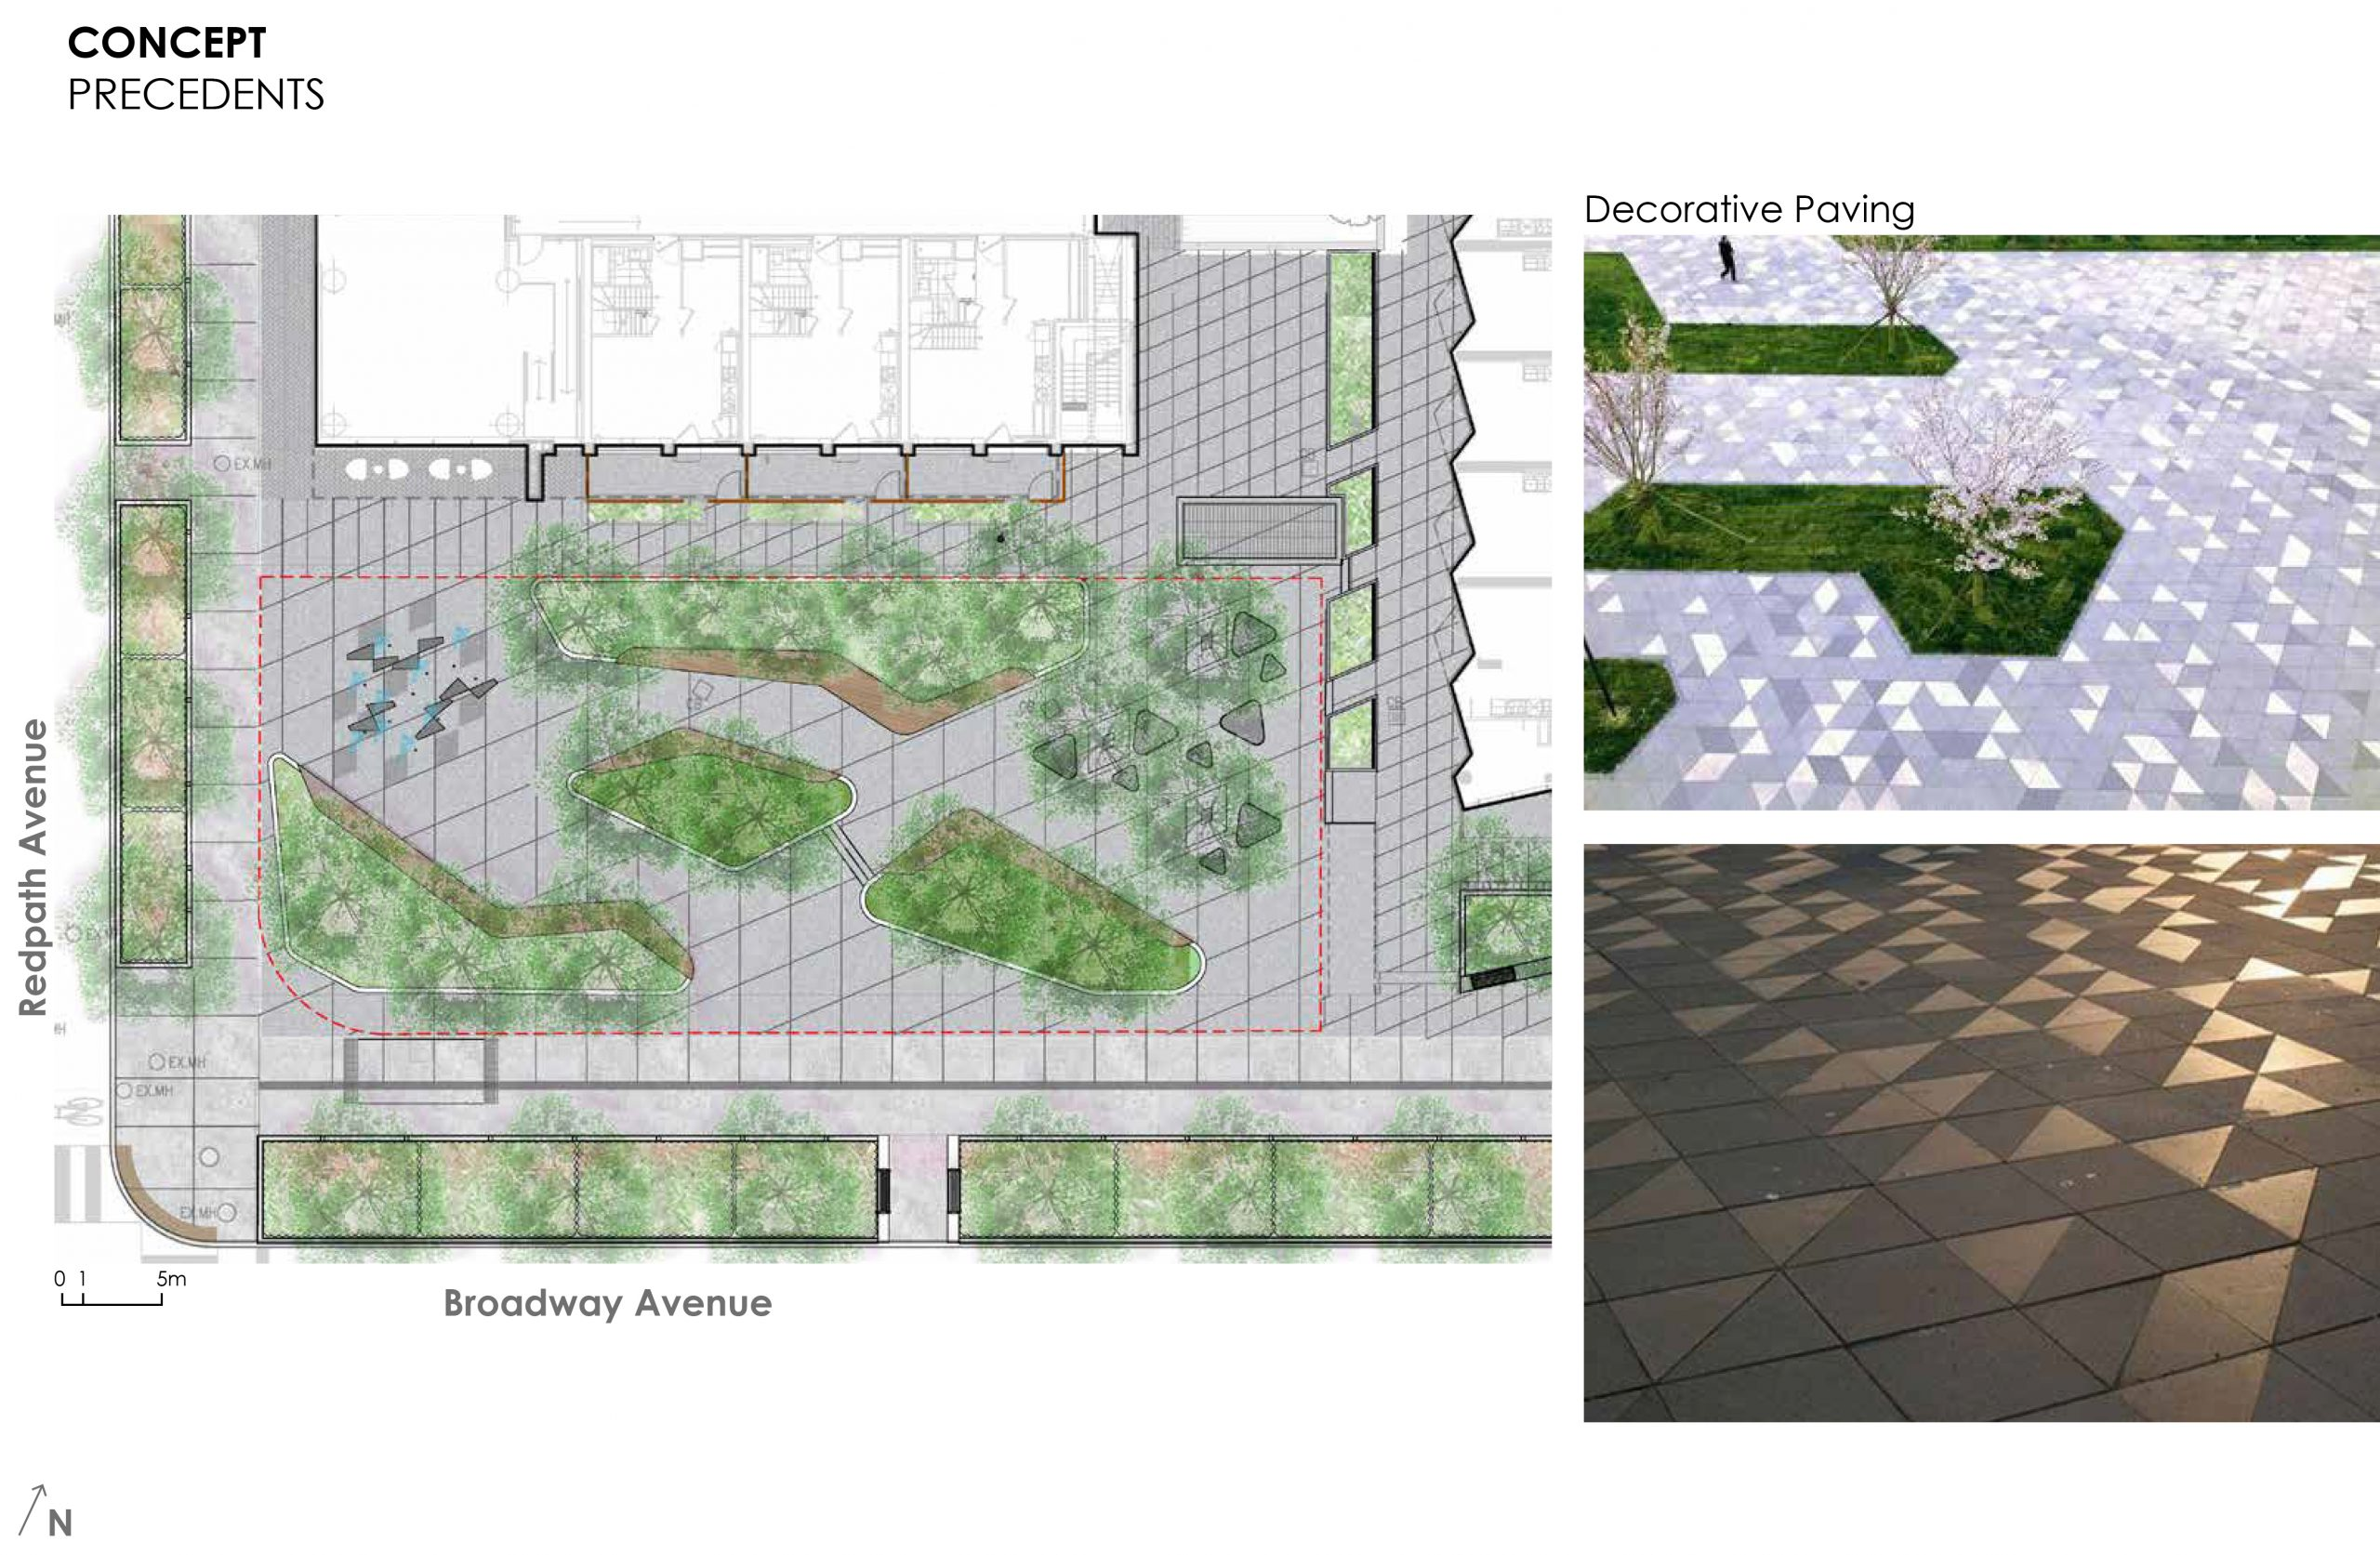 An image that provides some examples of the decorative paving proposed throughout the new park. The images of the paving show square and triangle tile designs.